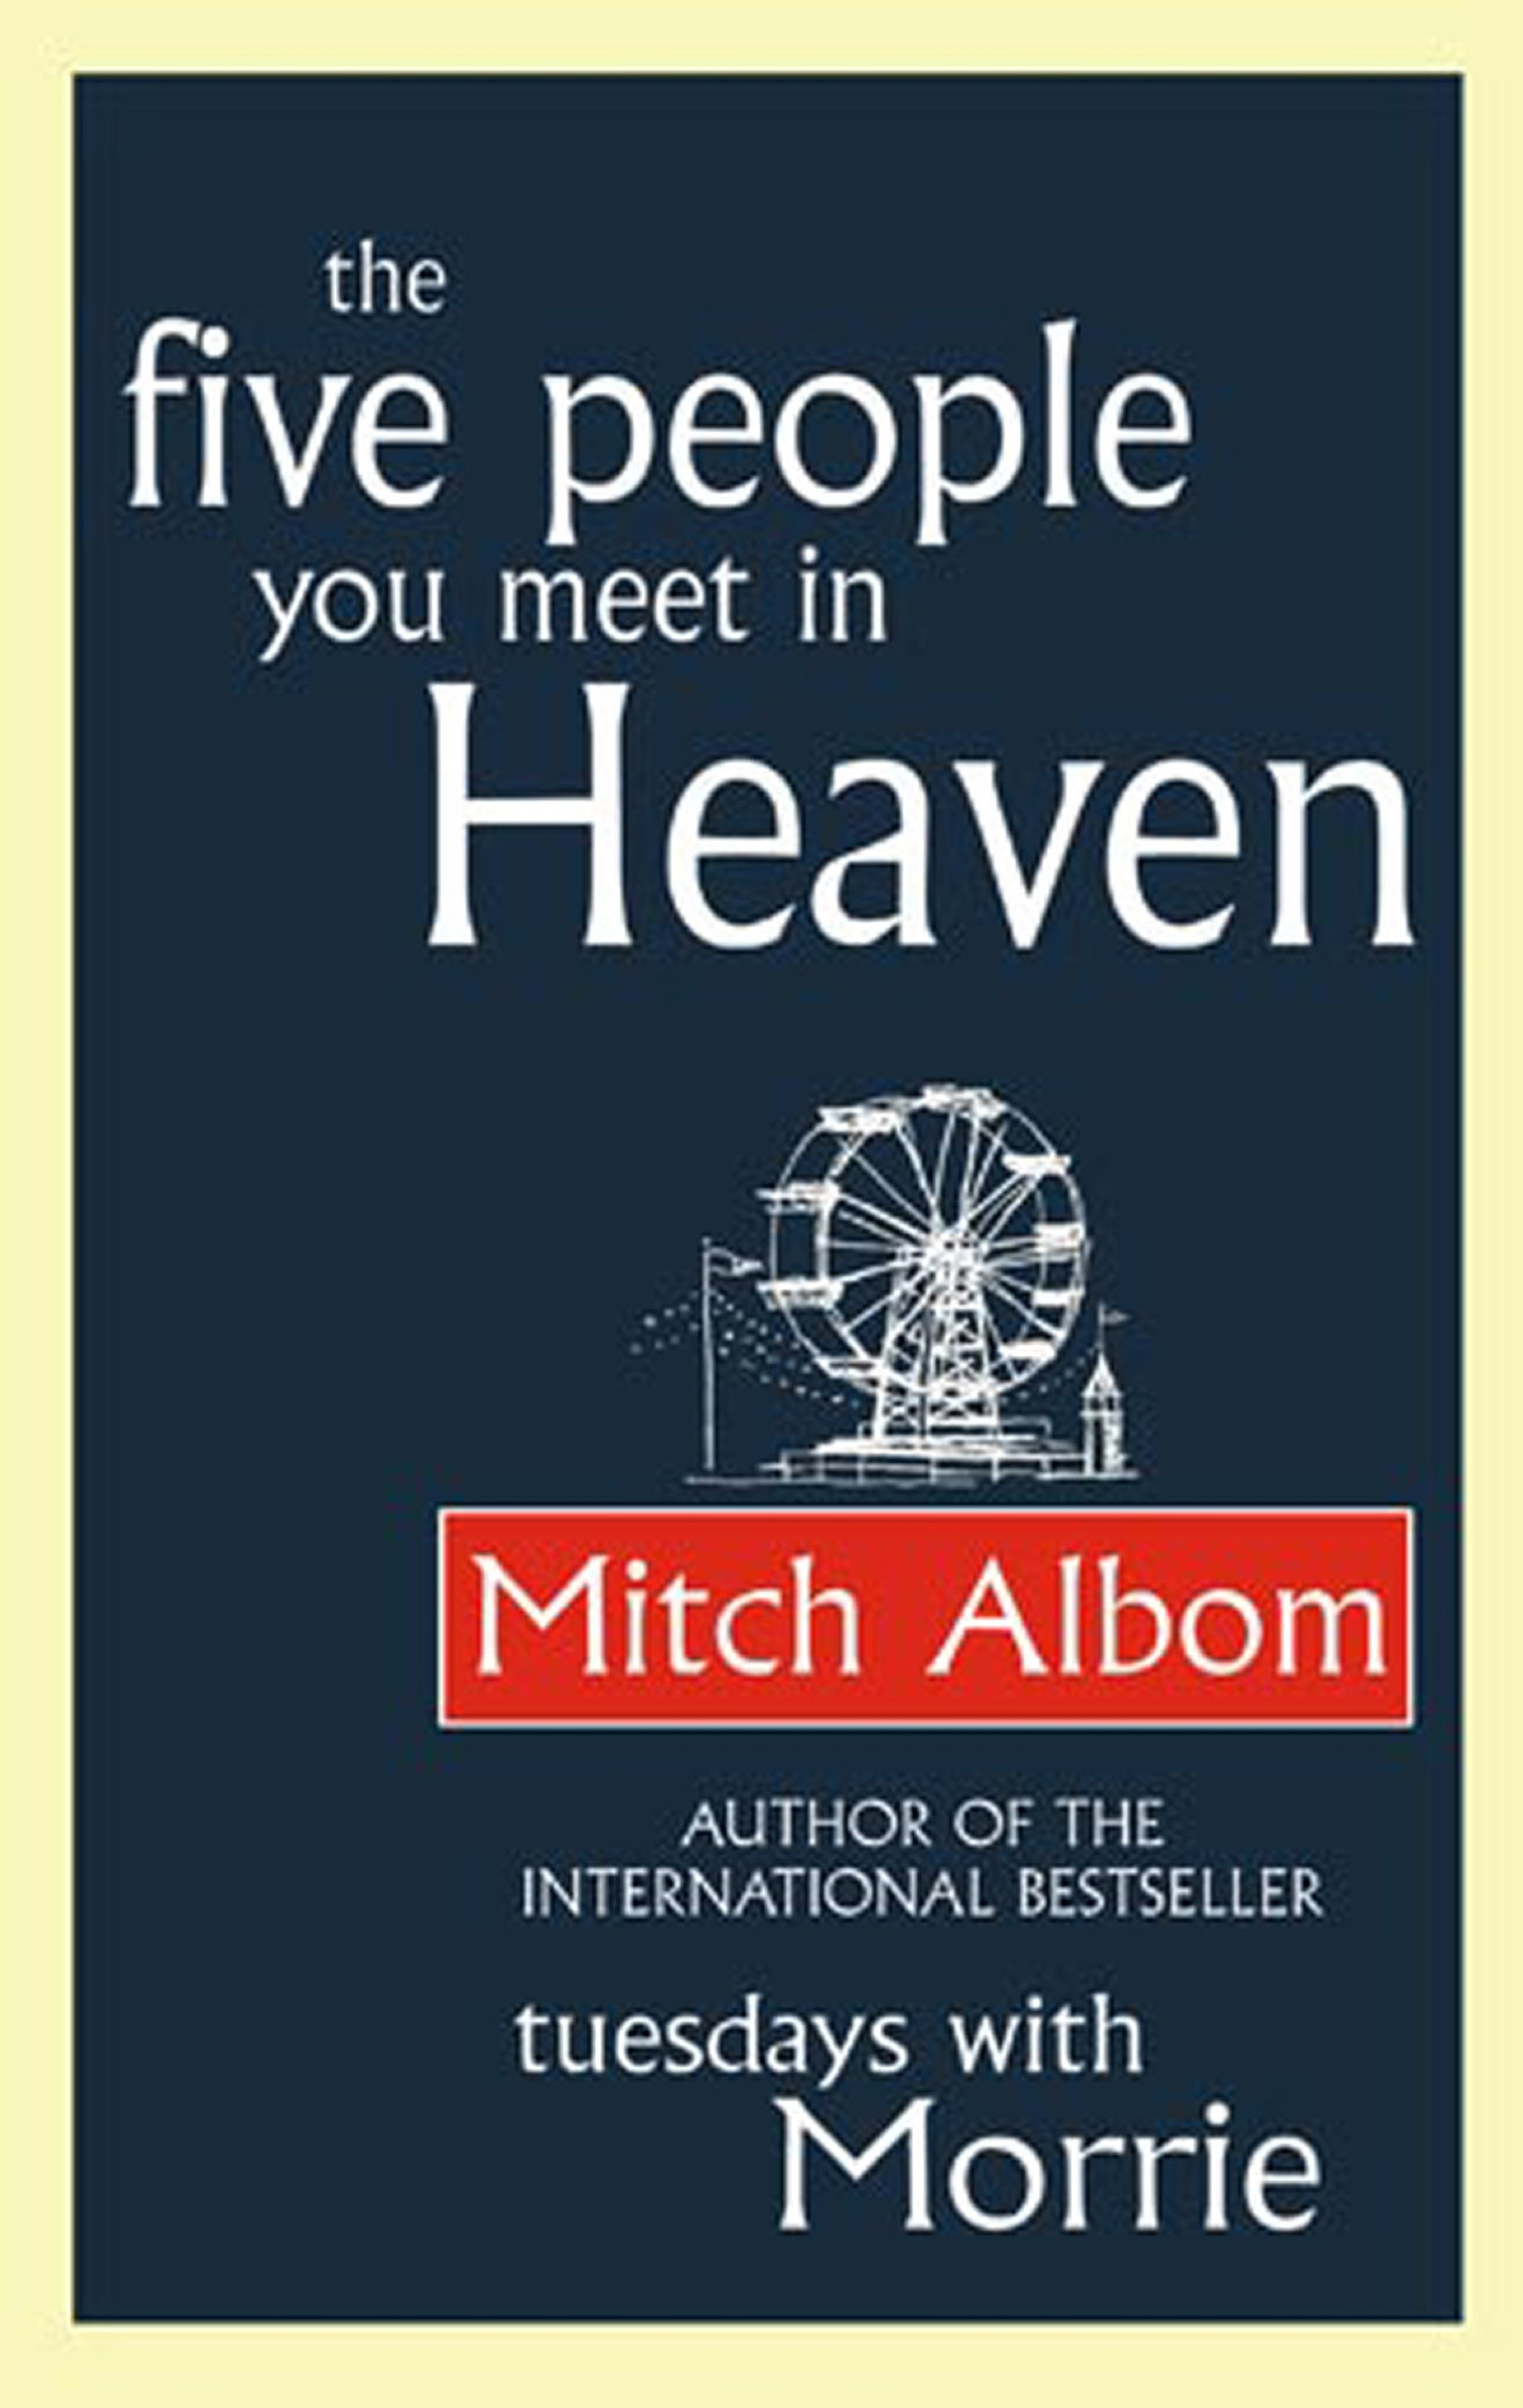 the characters of the novel the five people you meet in heaven by mitch albom Fifteen years ago, in mitch albom's beloved novel, the five people you meet in heaven, the world fell in love with eddie, a grizzled war veteran- turned-amusement park mechanic who died saving the life of a young girl named annie.